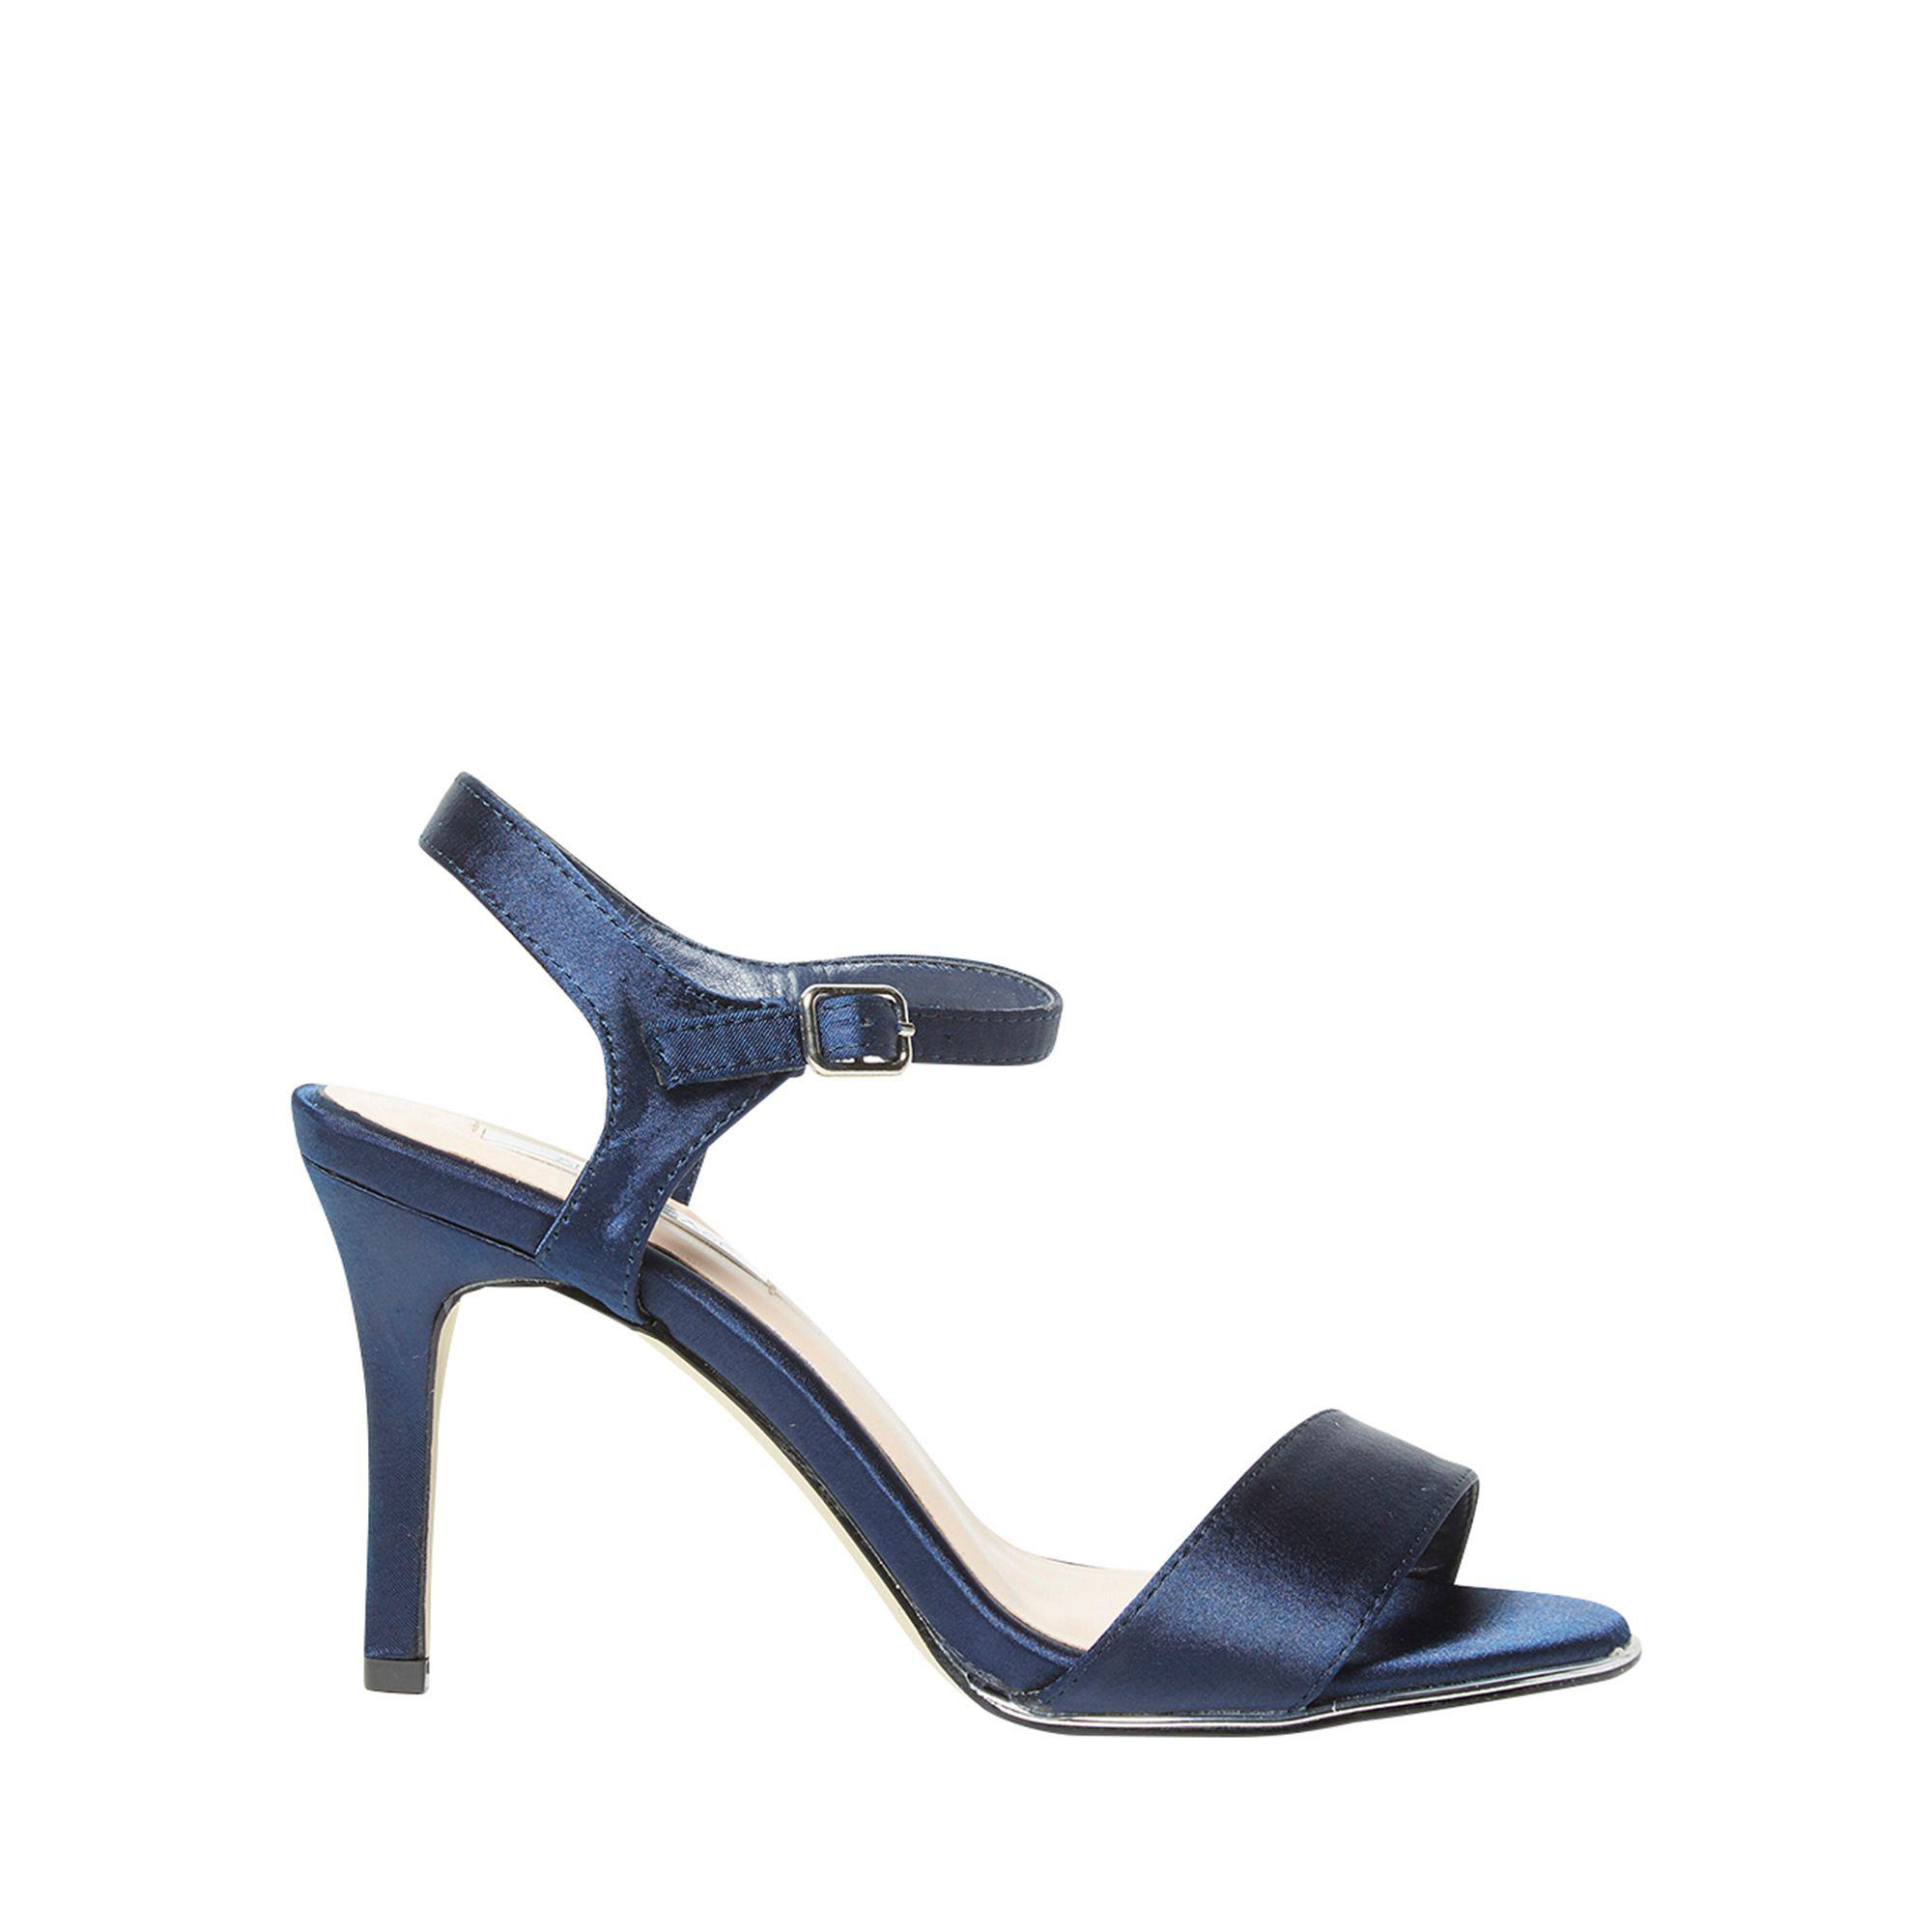 Dorothy Perkins BOUNTY - Sandals - navy m8N7FIFXnb